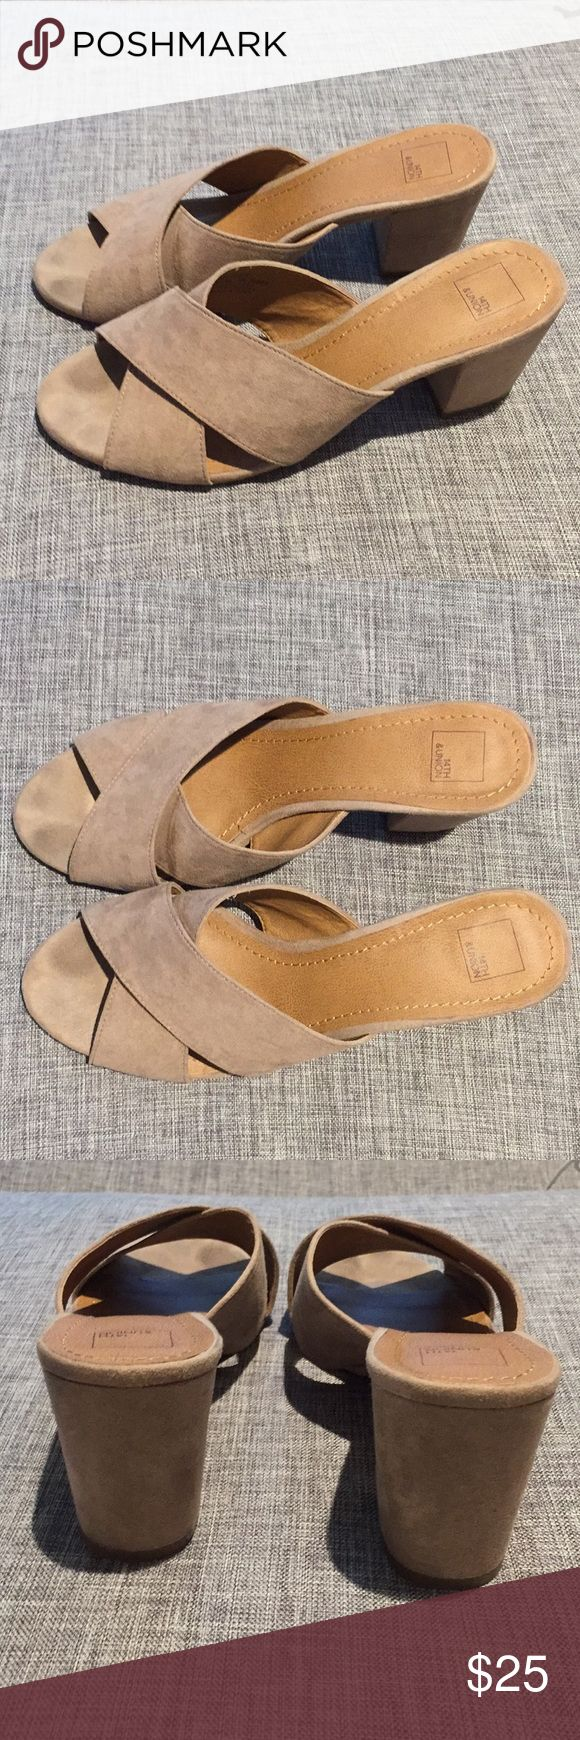 Brown Suede Crossover Sandals Adorable brown suede crossover sandals by 14th and Union that o purchased from Saks Off Fifth. These go with anything and have a heel of about 1-1.5 inches. So cute and easy to wear! Only worn a handful of times! 14th & Union Shoes Sandals